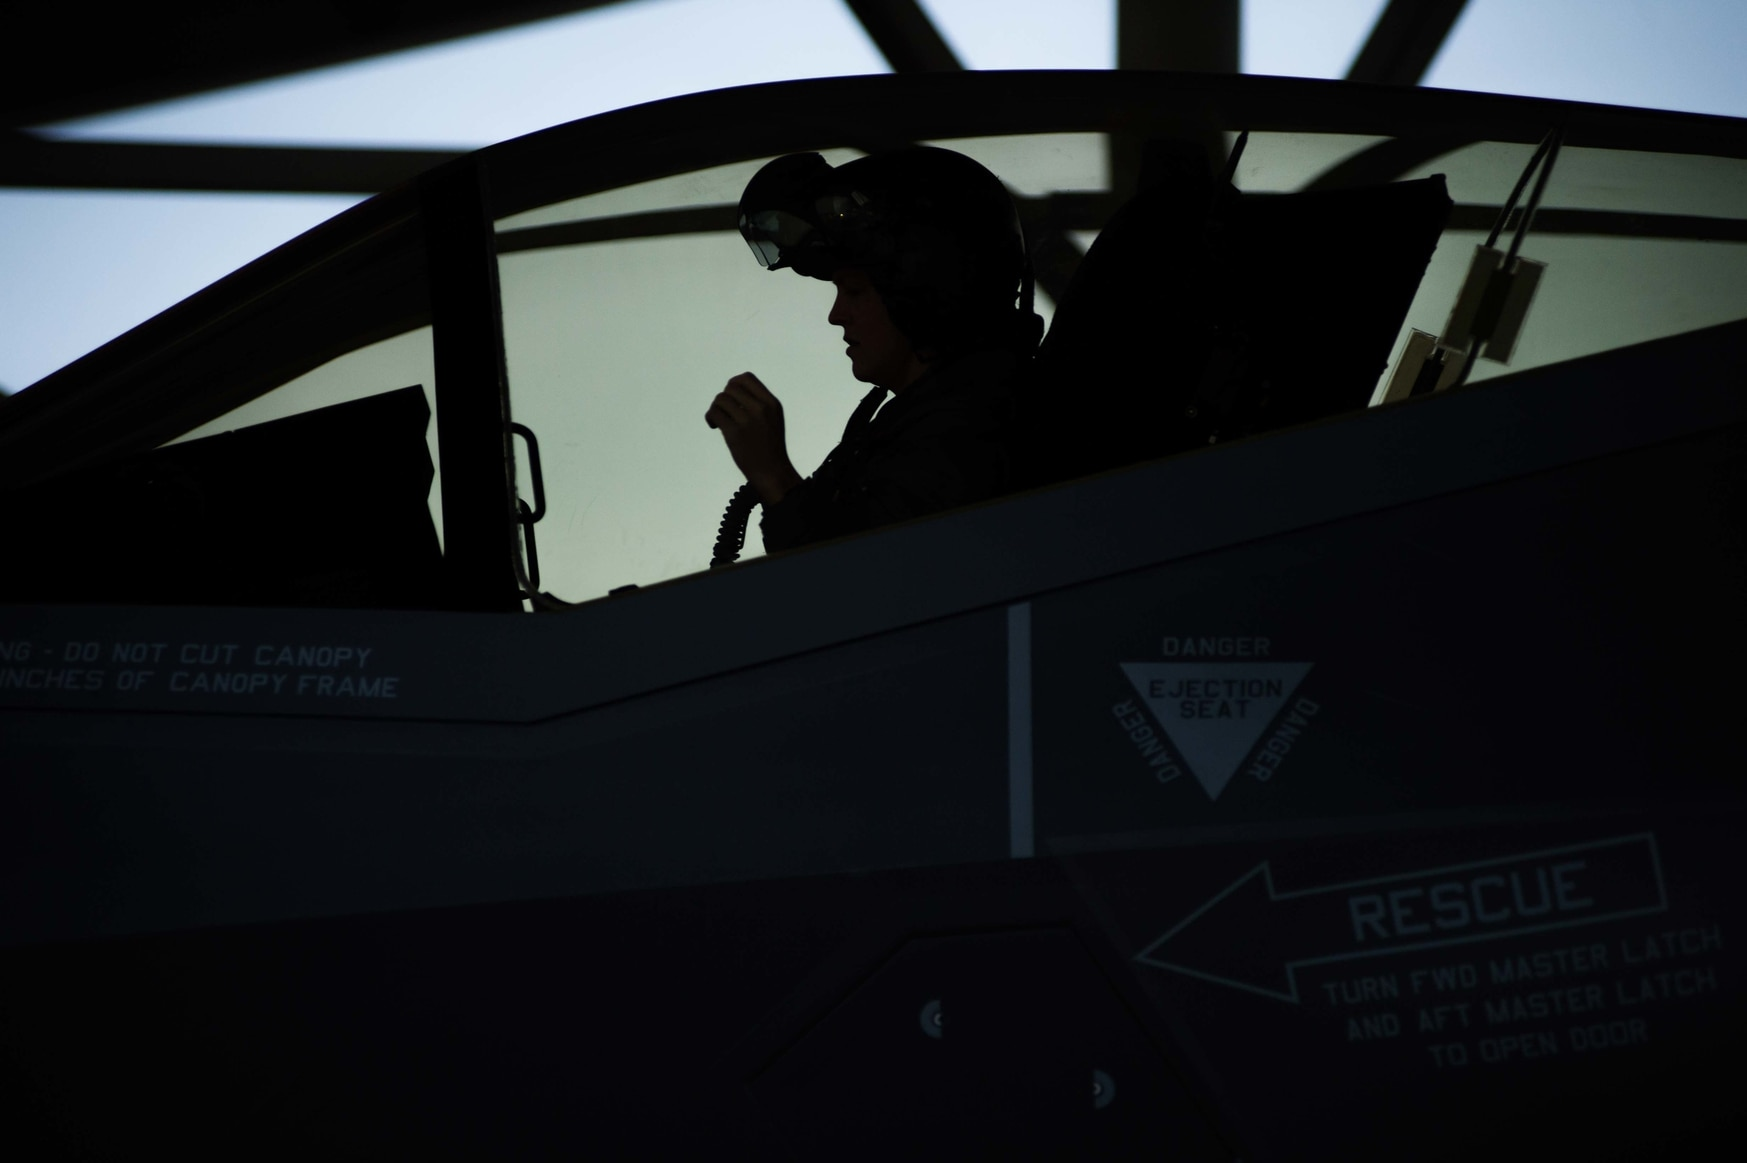 Spikes in the F-35 cockpit's cabin pressure have been known to cause extreme ear and sinus pain. (Senior Airman Danielle Charmichael/U.S. Air Force)